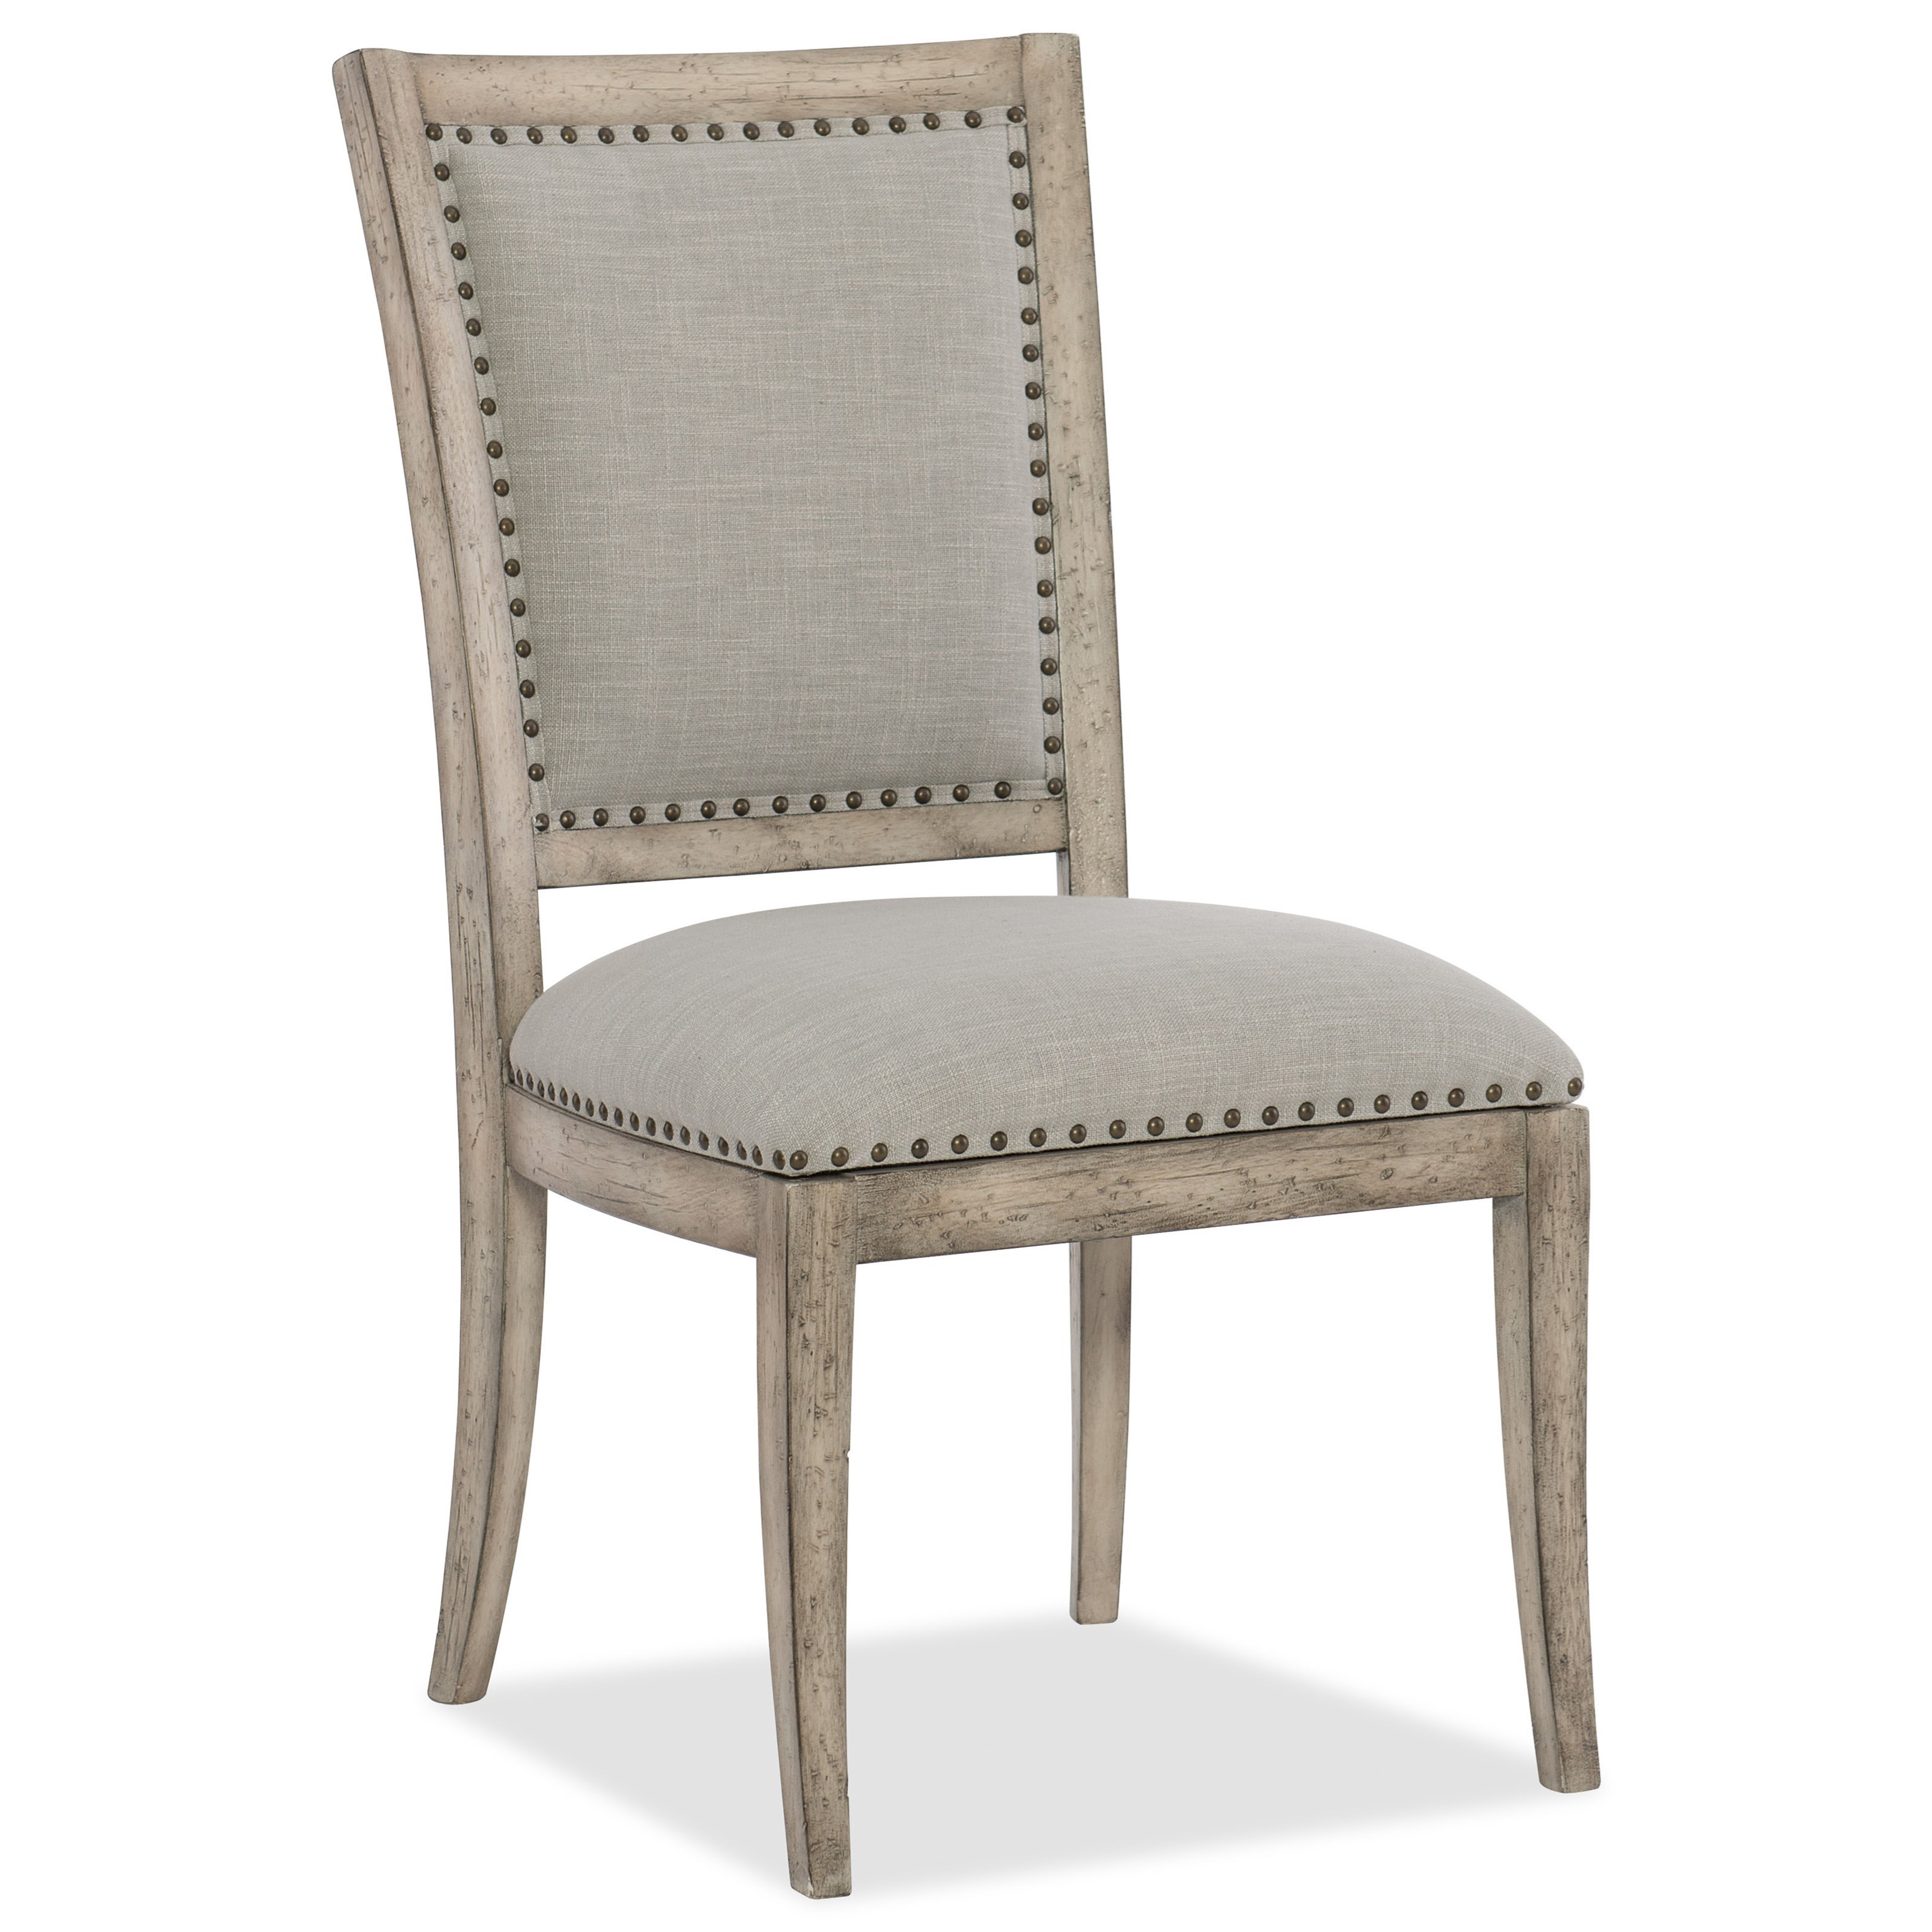 Boheme Vitton Upholstered Side Chair by Hooker Furniture at Stoney Creek Furniture